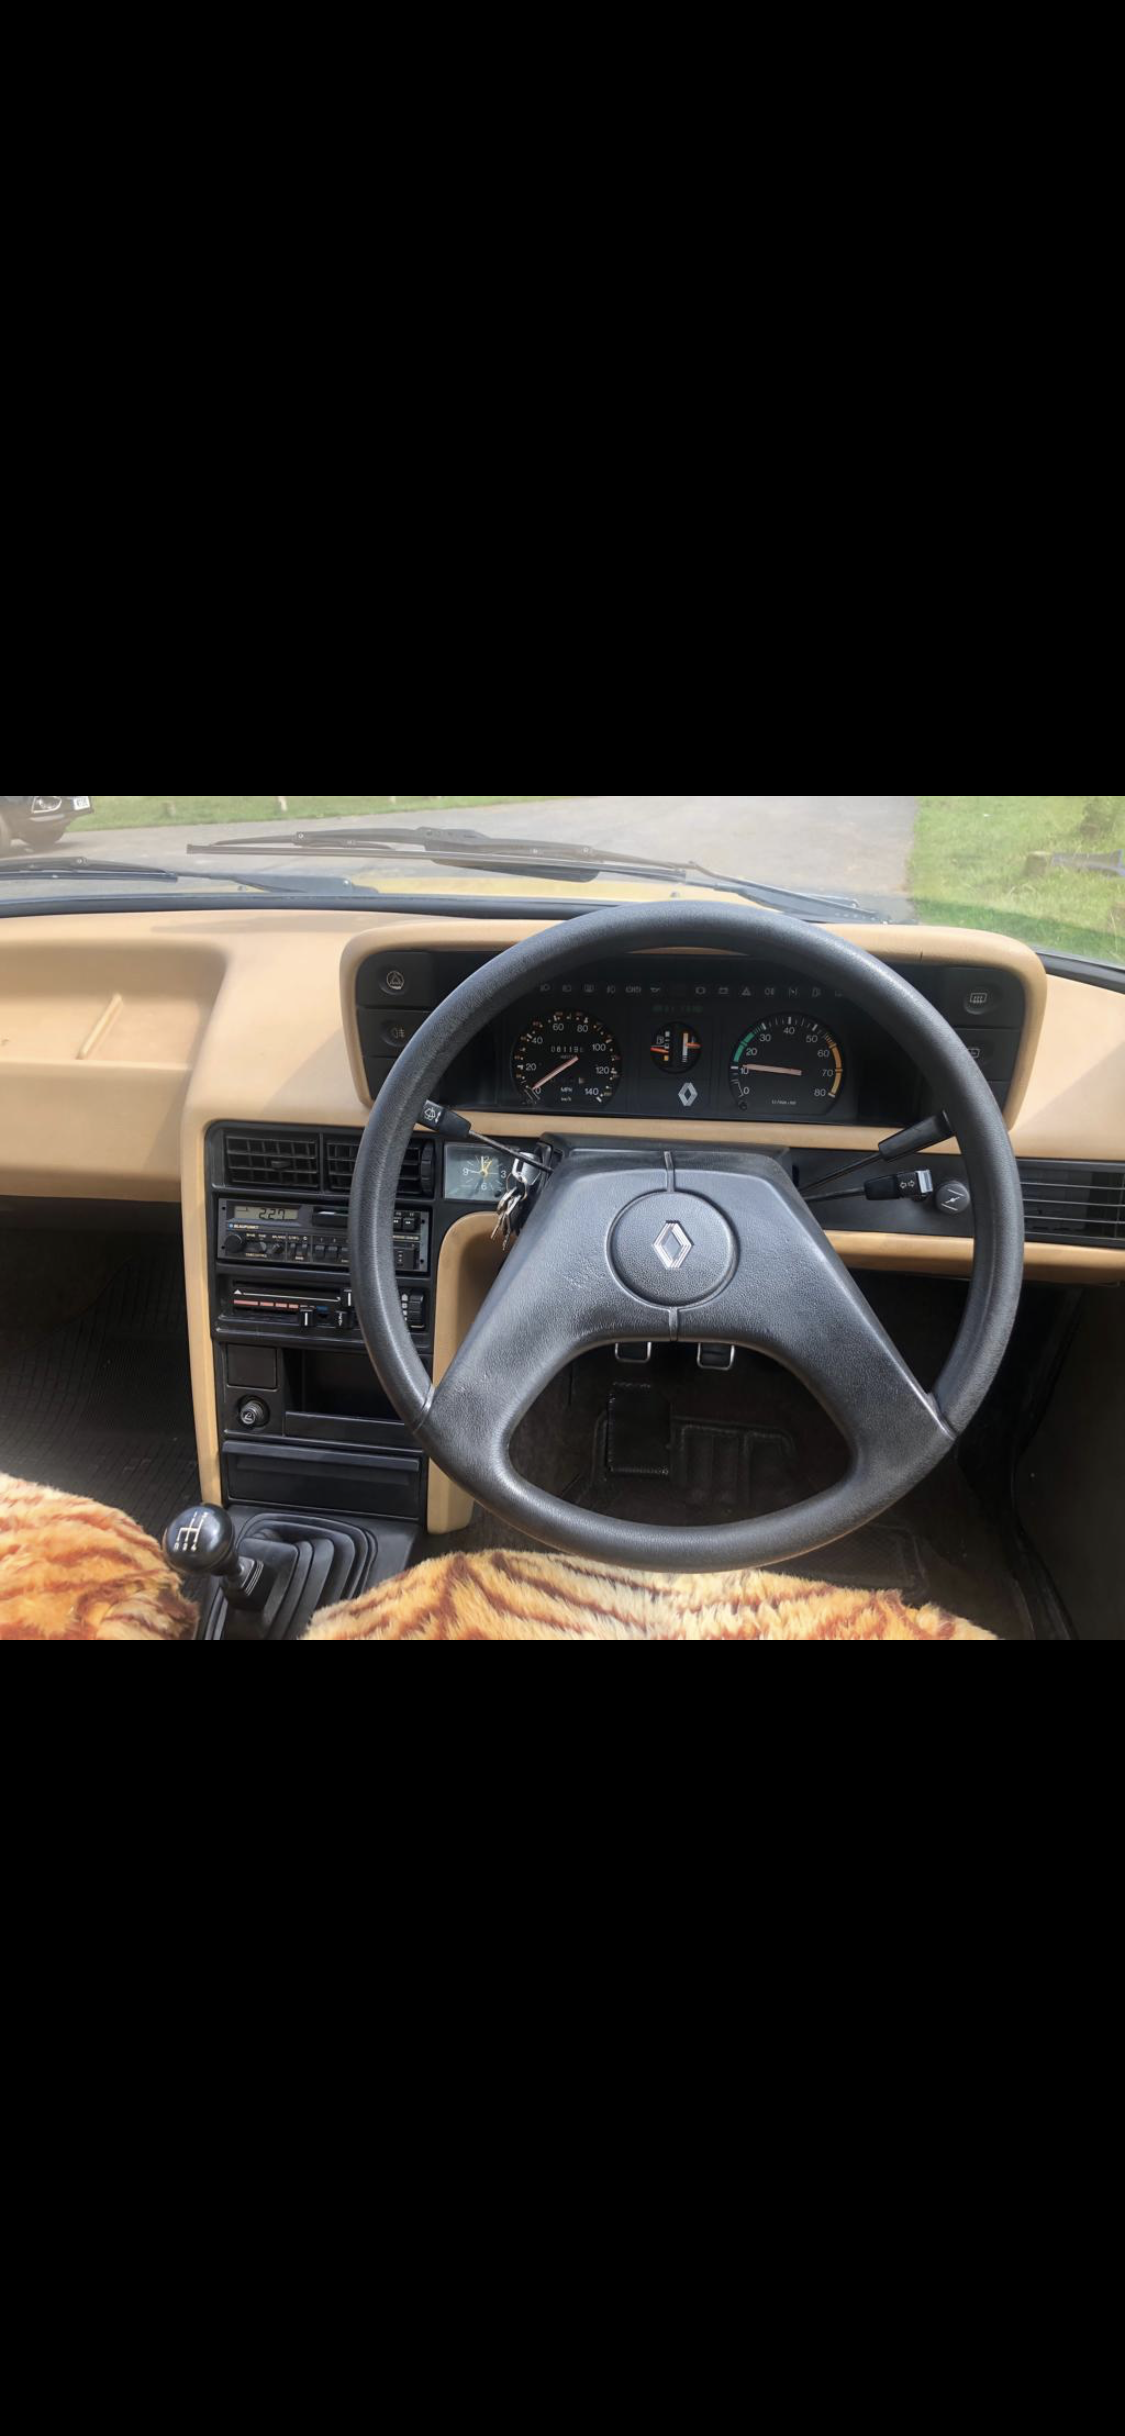 1984 Renault Fuego TL For Sale (picture 6 of 6)